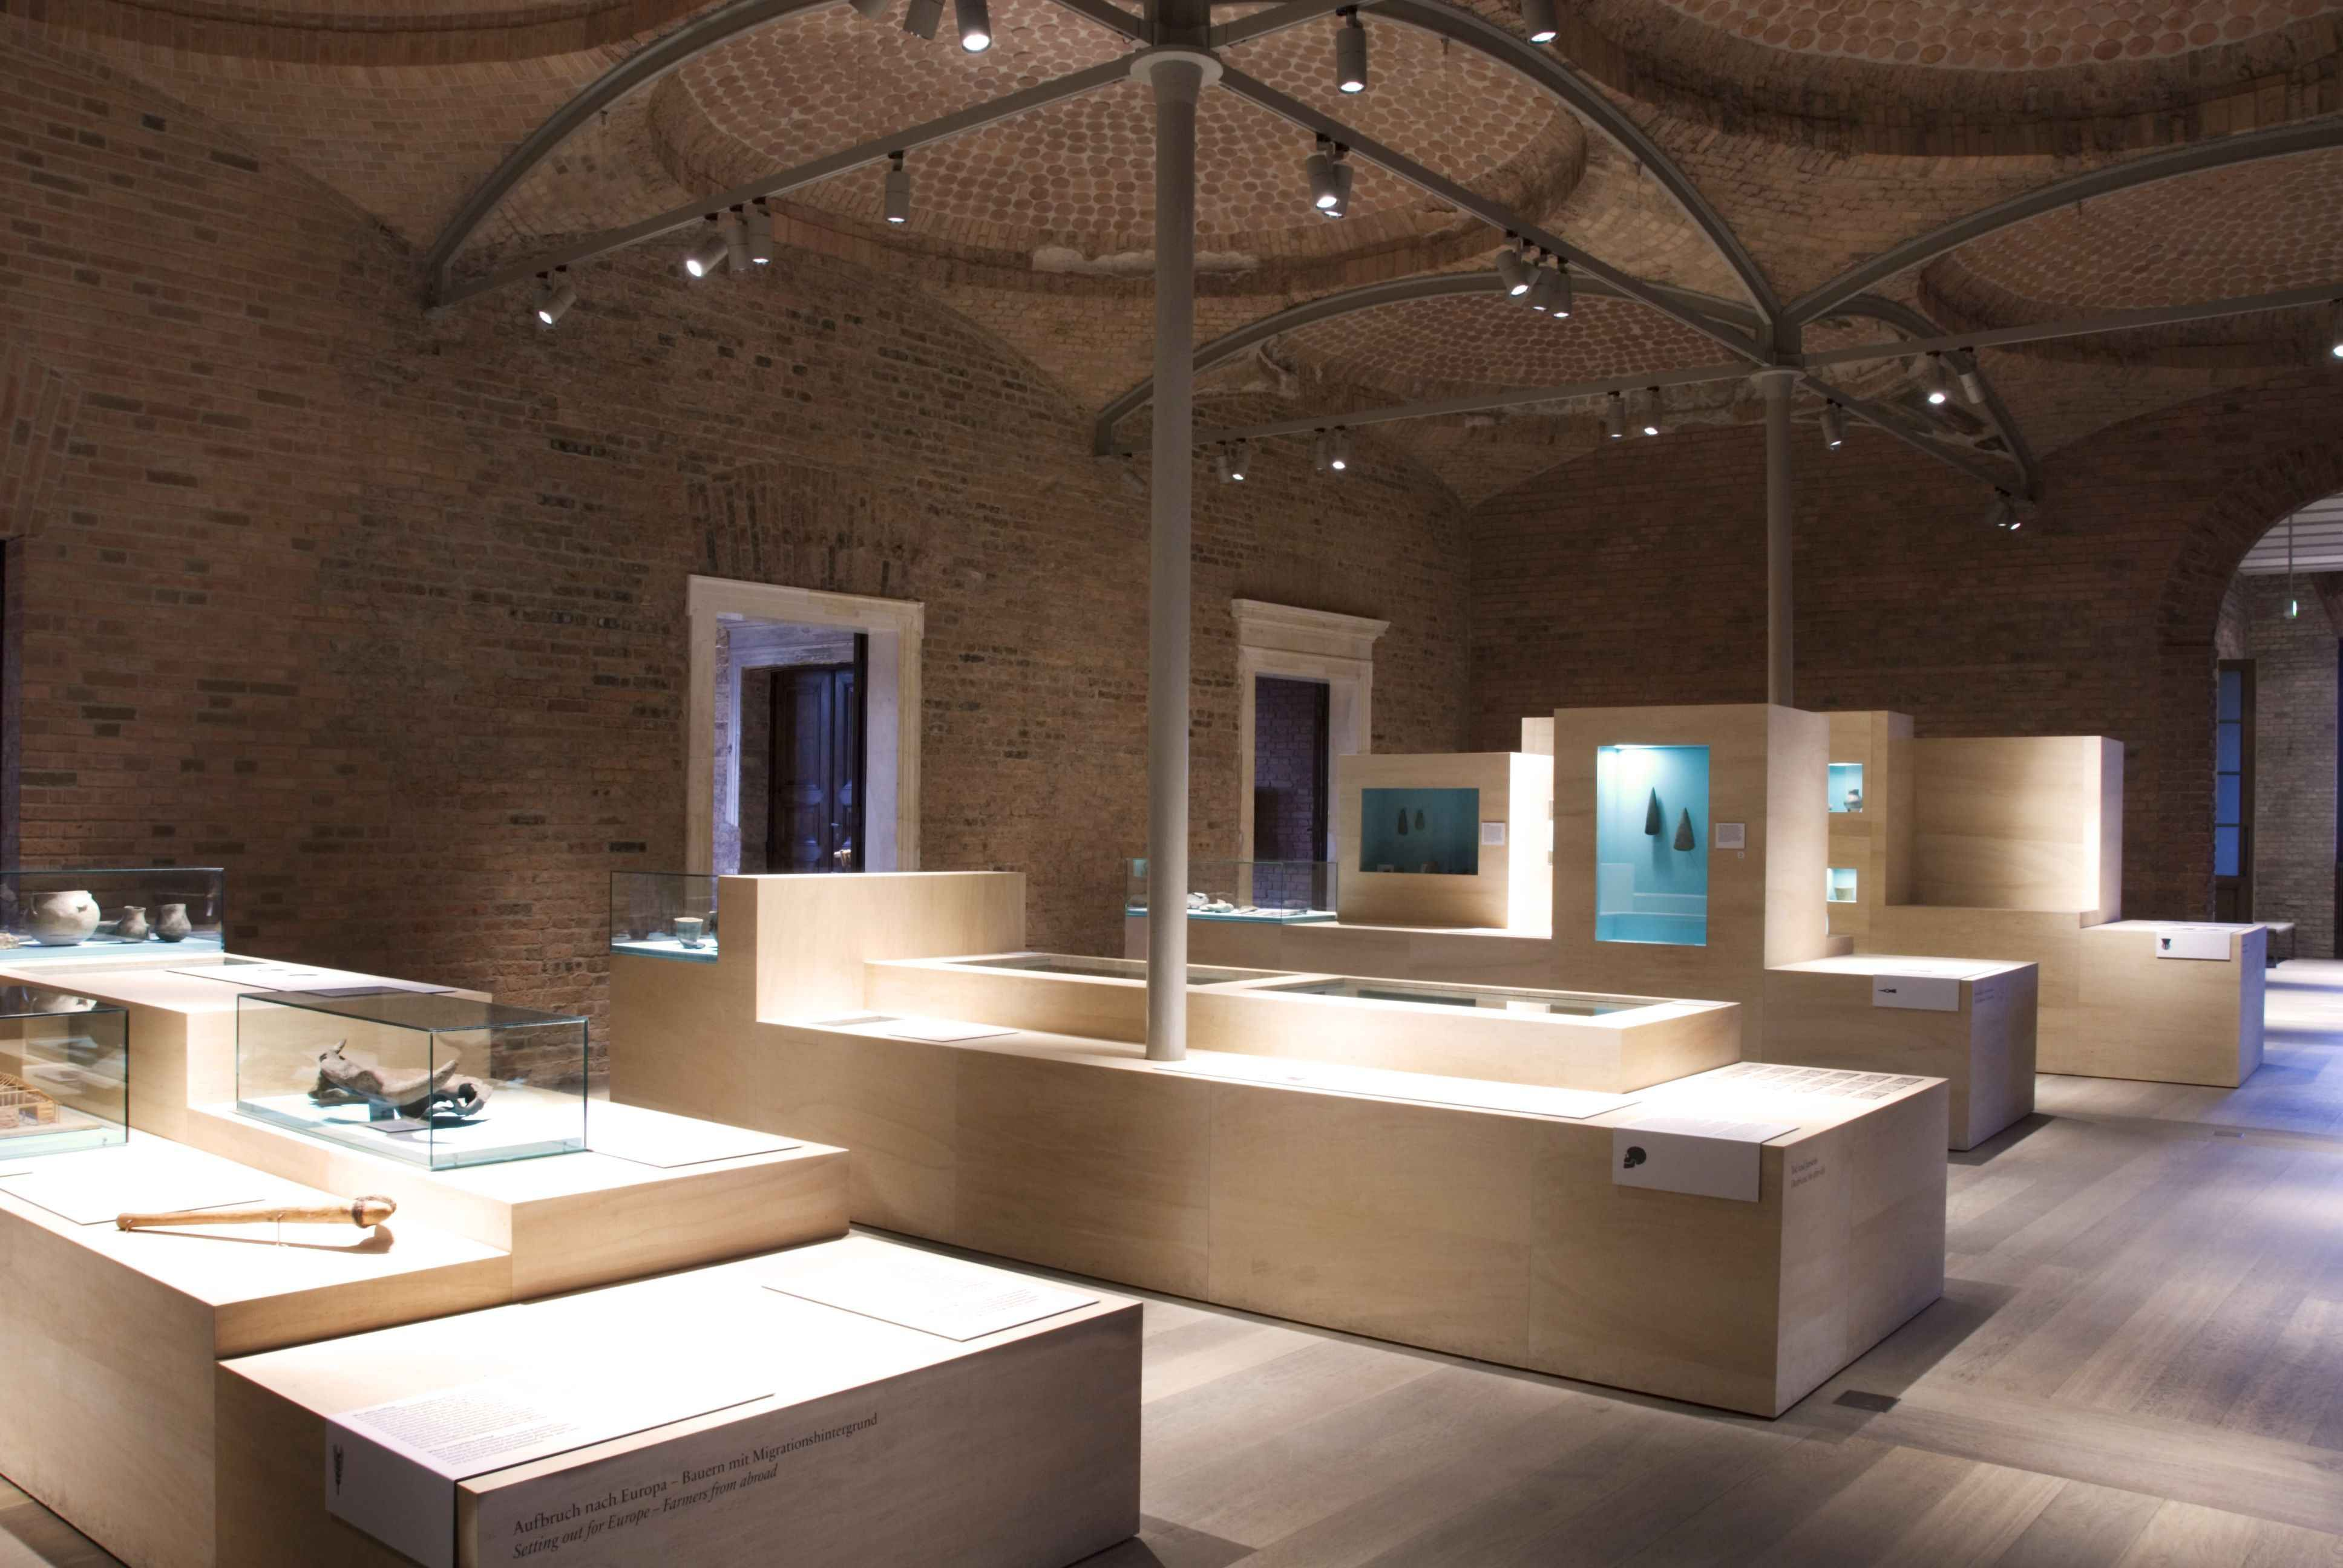 The current temporary exhibition with wooden installations. Photo: C. Plamp